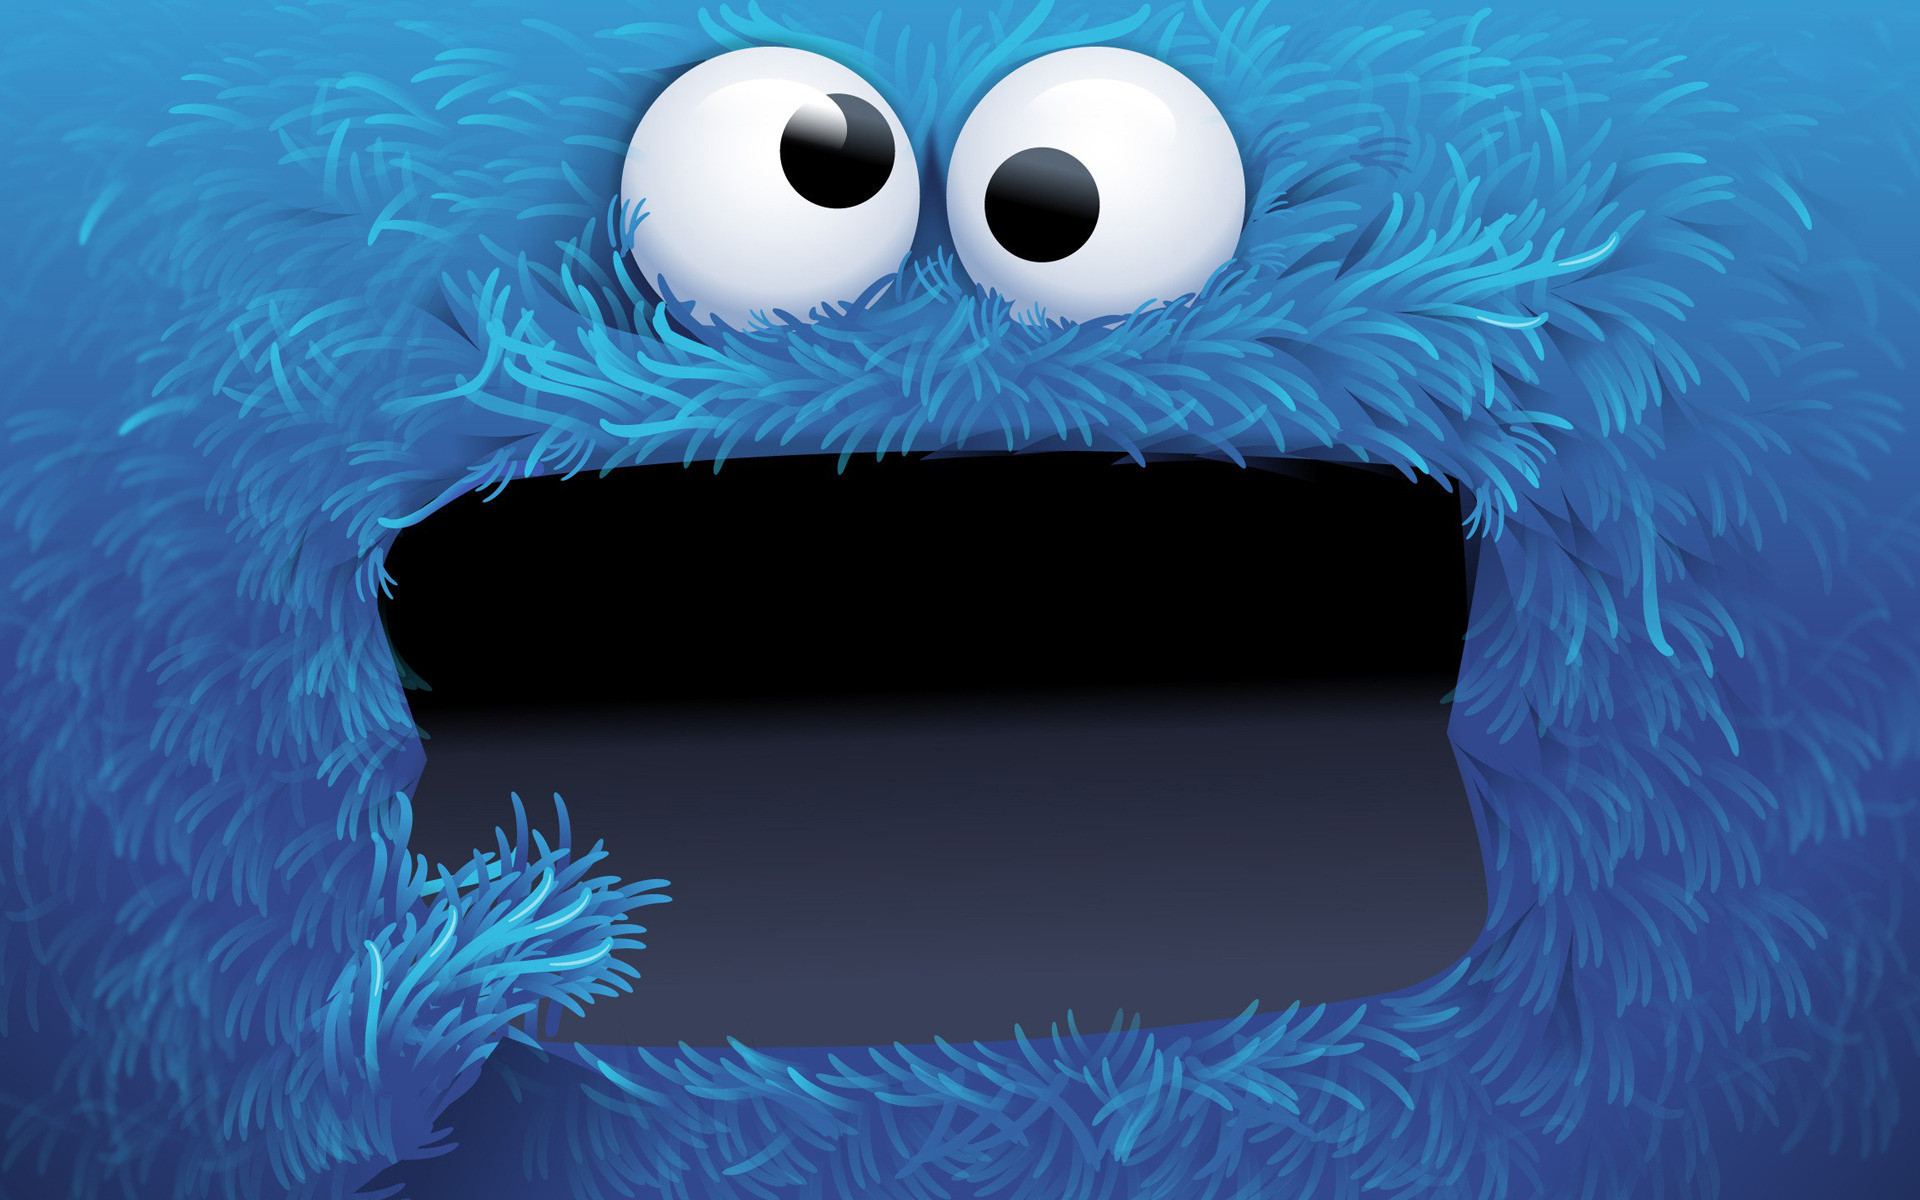 hd cookie monster wallpaper background photos windows amazing 4k best  wallpaper ever free download pictures 1920×1200